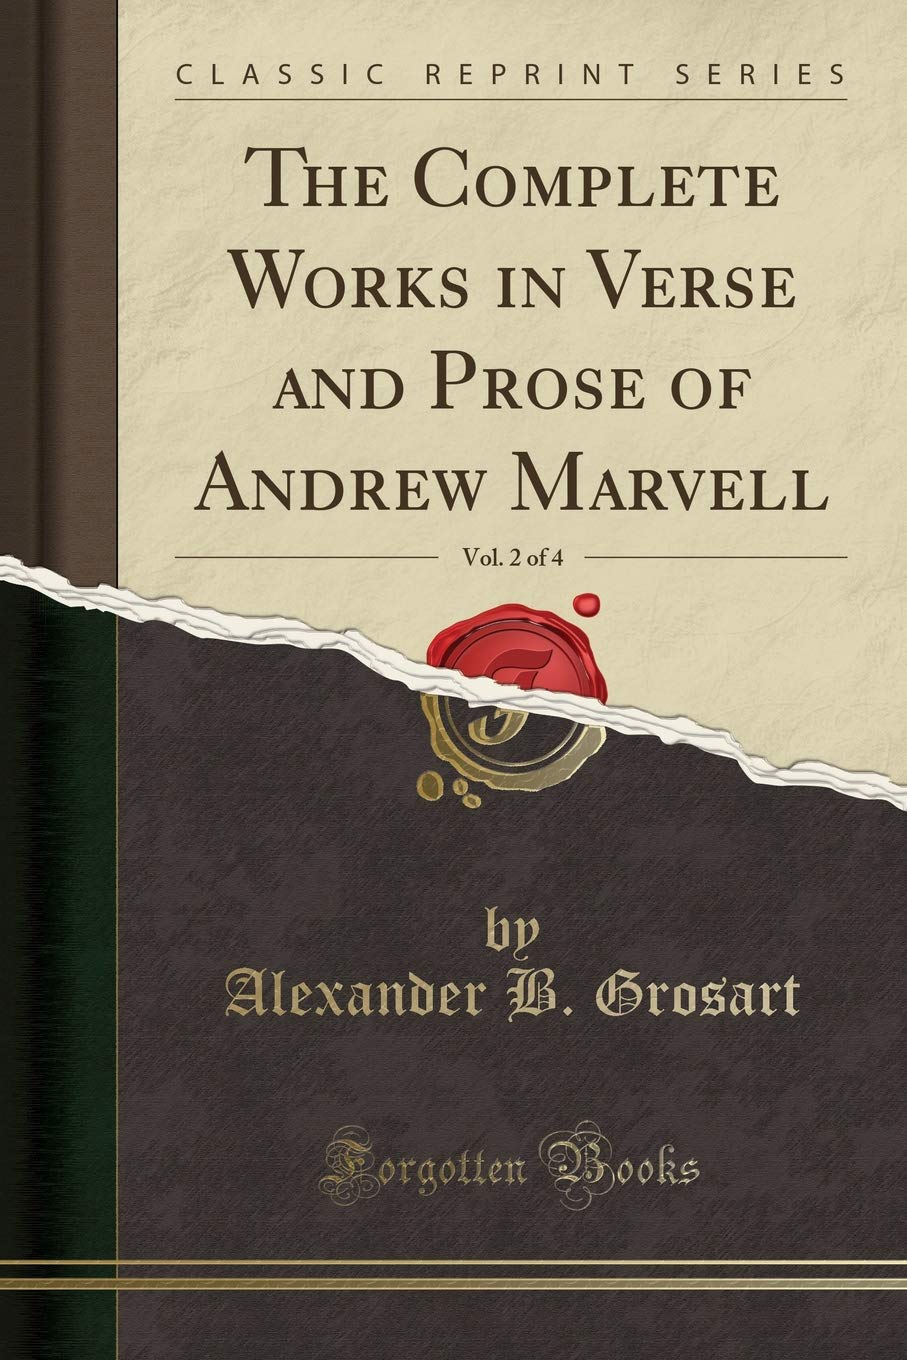 The Complete Works in Verse and Prose of Andrew Marvell, Vol. 2 of 4 (Classic Reprint) pdf